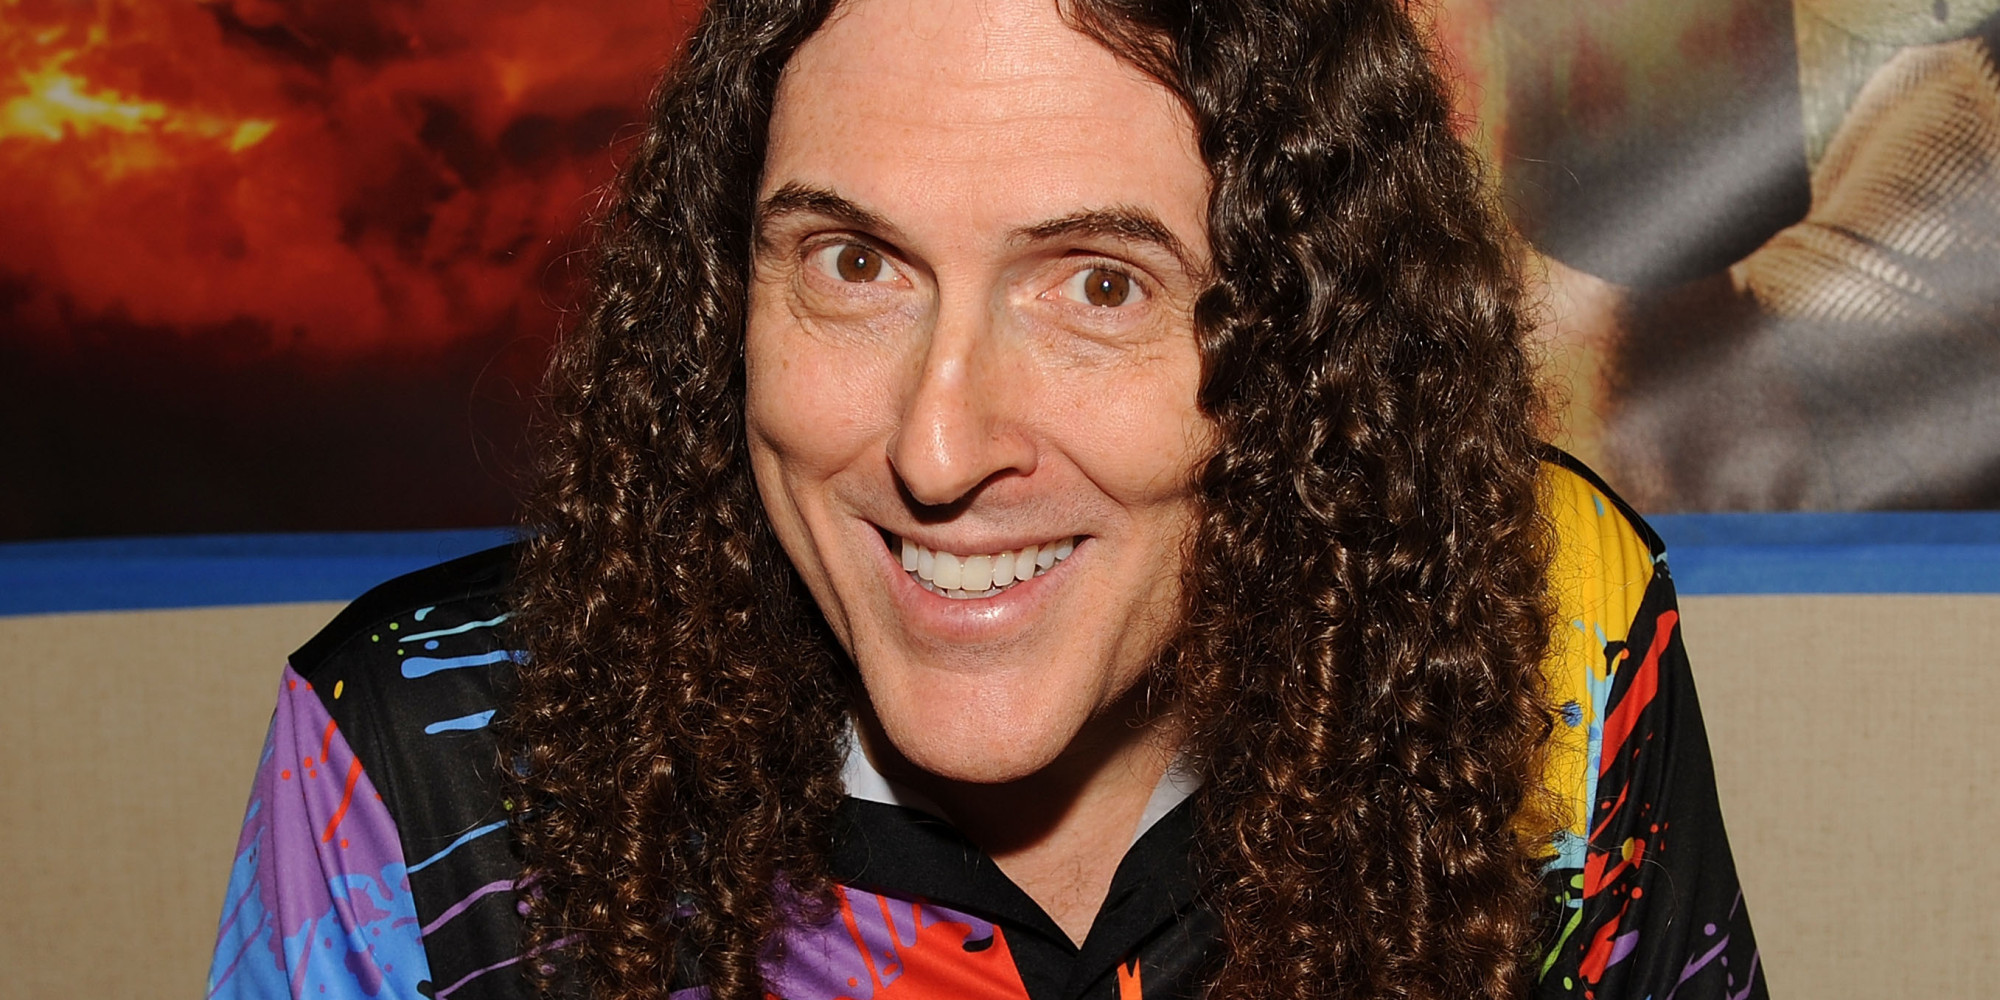 Weird Al Yankovic Vicar Street 6 October 2015